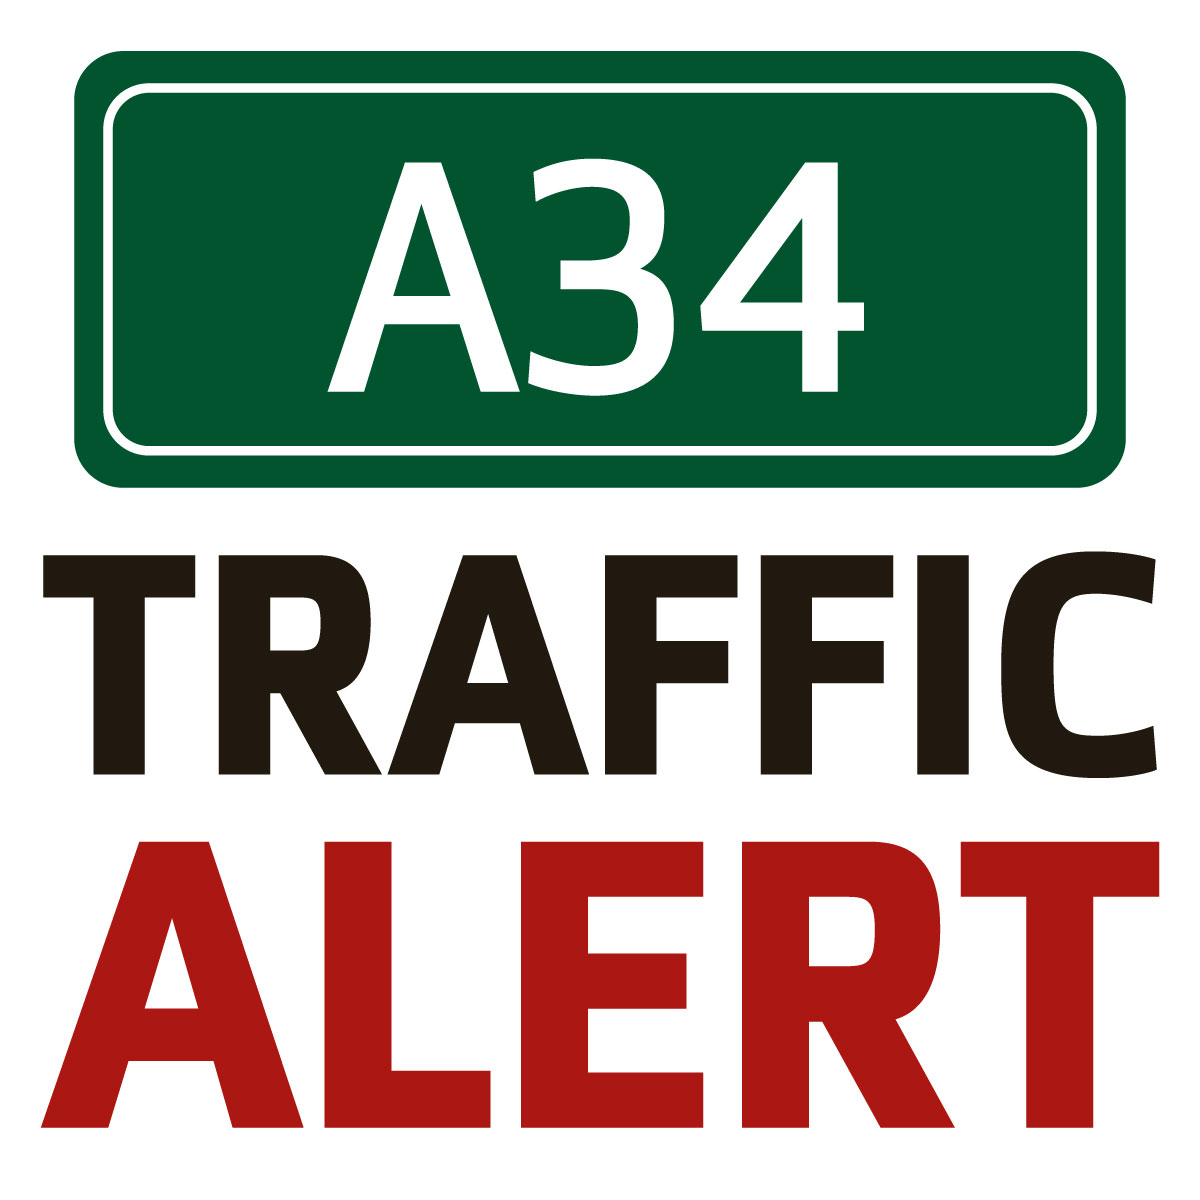 Delays on A34 after three vehicle crash